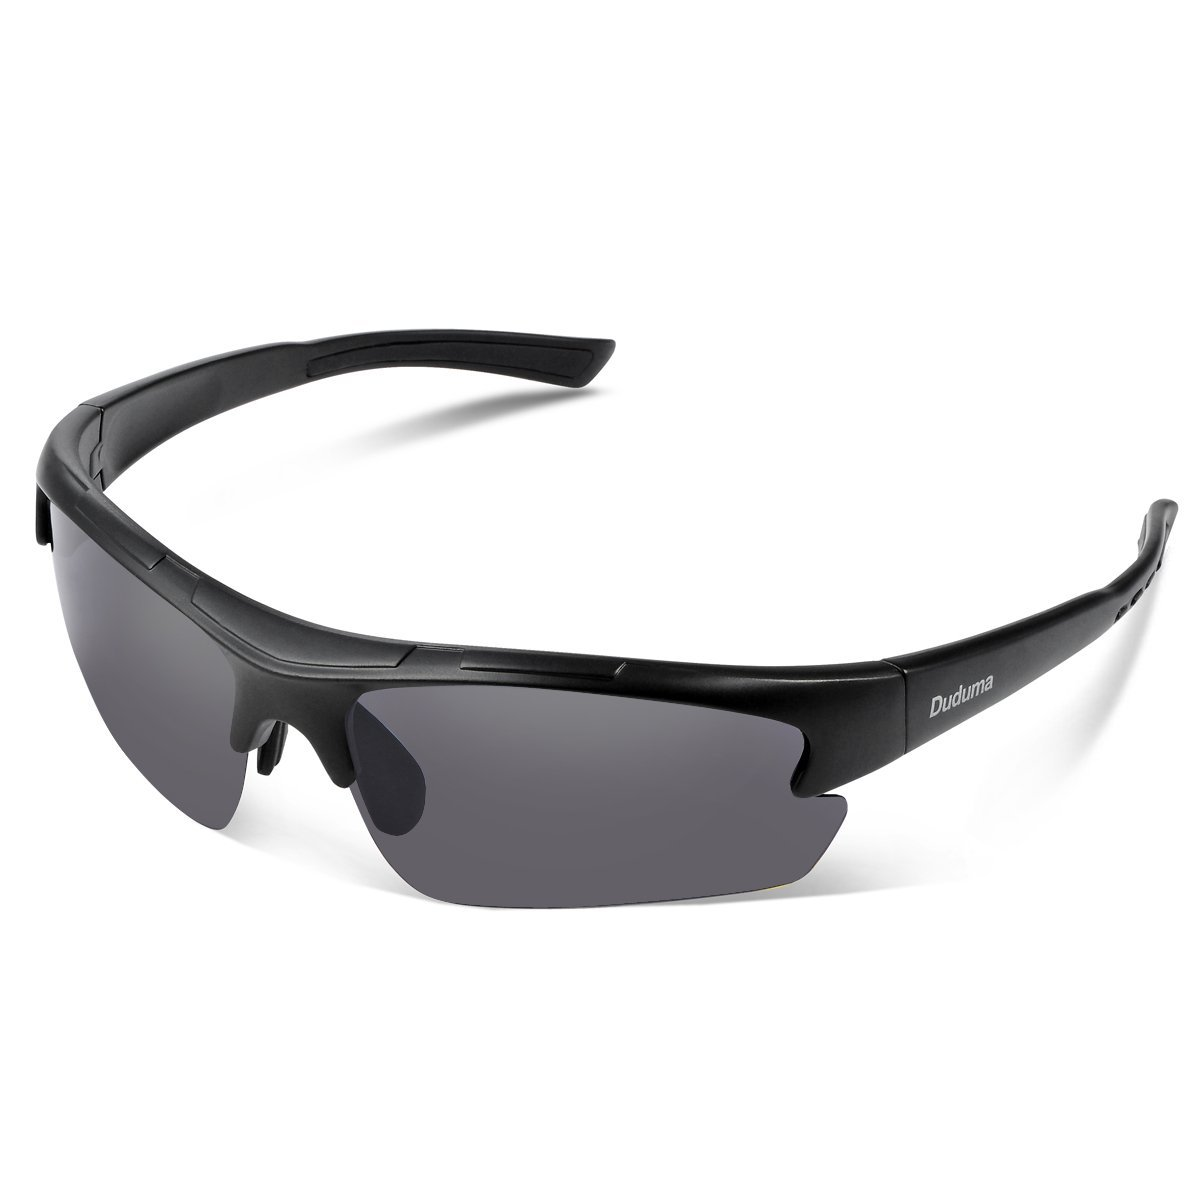 13. Duduma Polarized Sunglasses